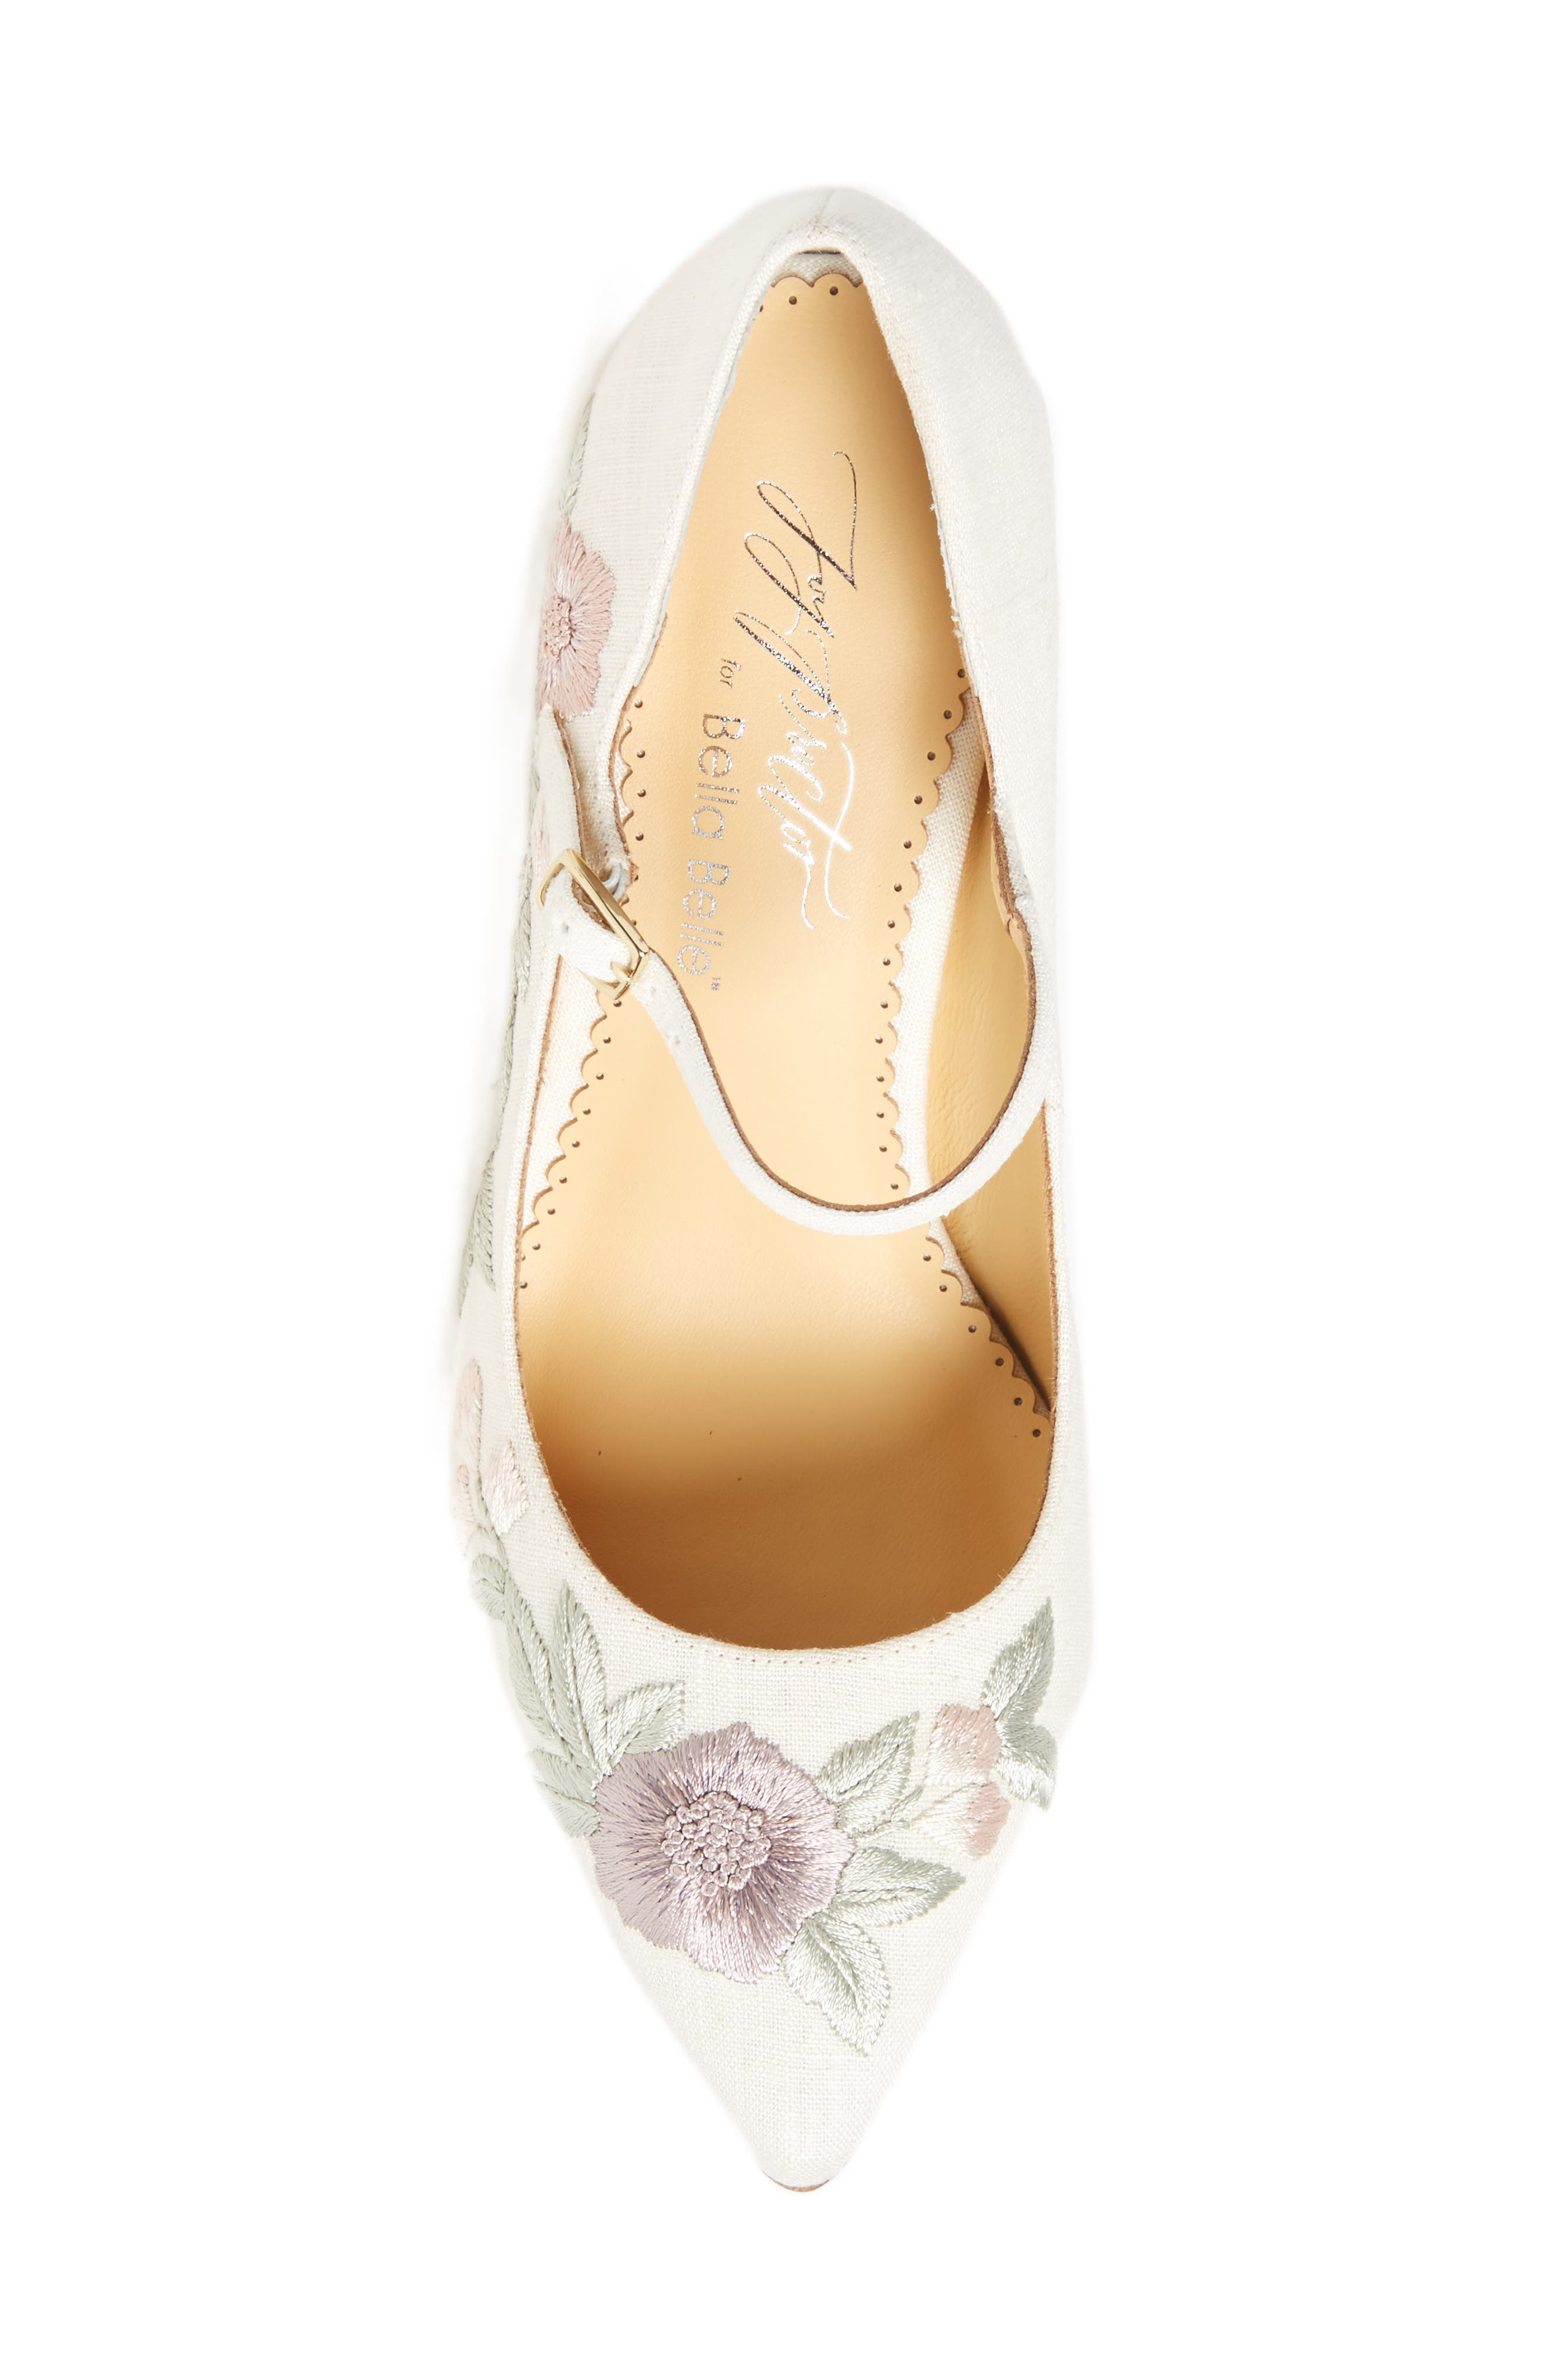 Adelaide Embroidered Pump,                             Alternate thumbnail 5, color,                             LIGHT FLAX FABRIC